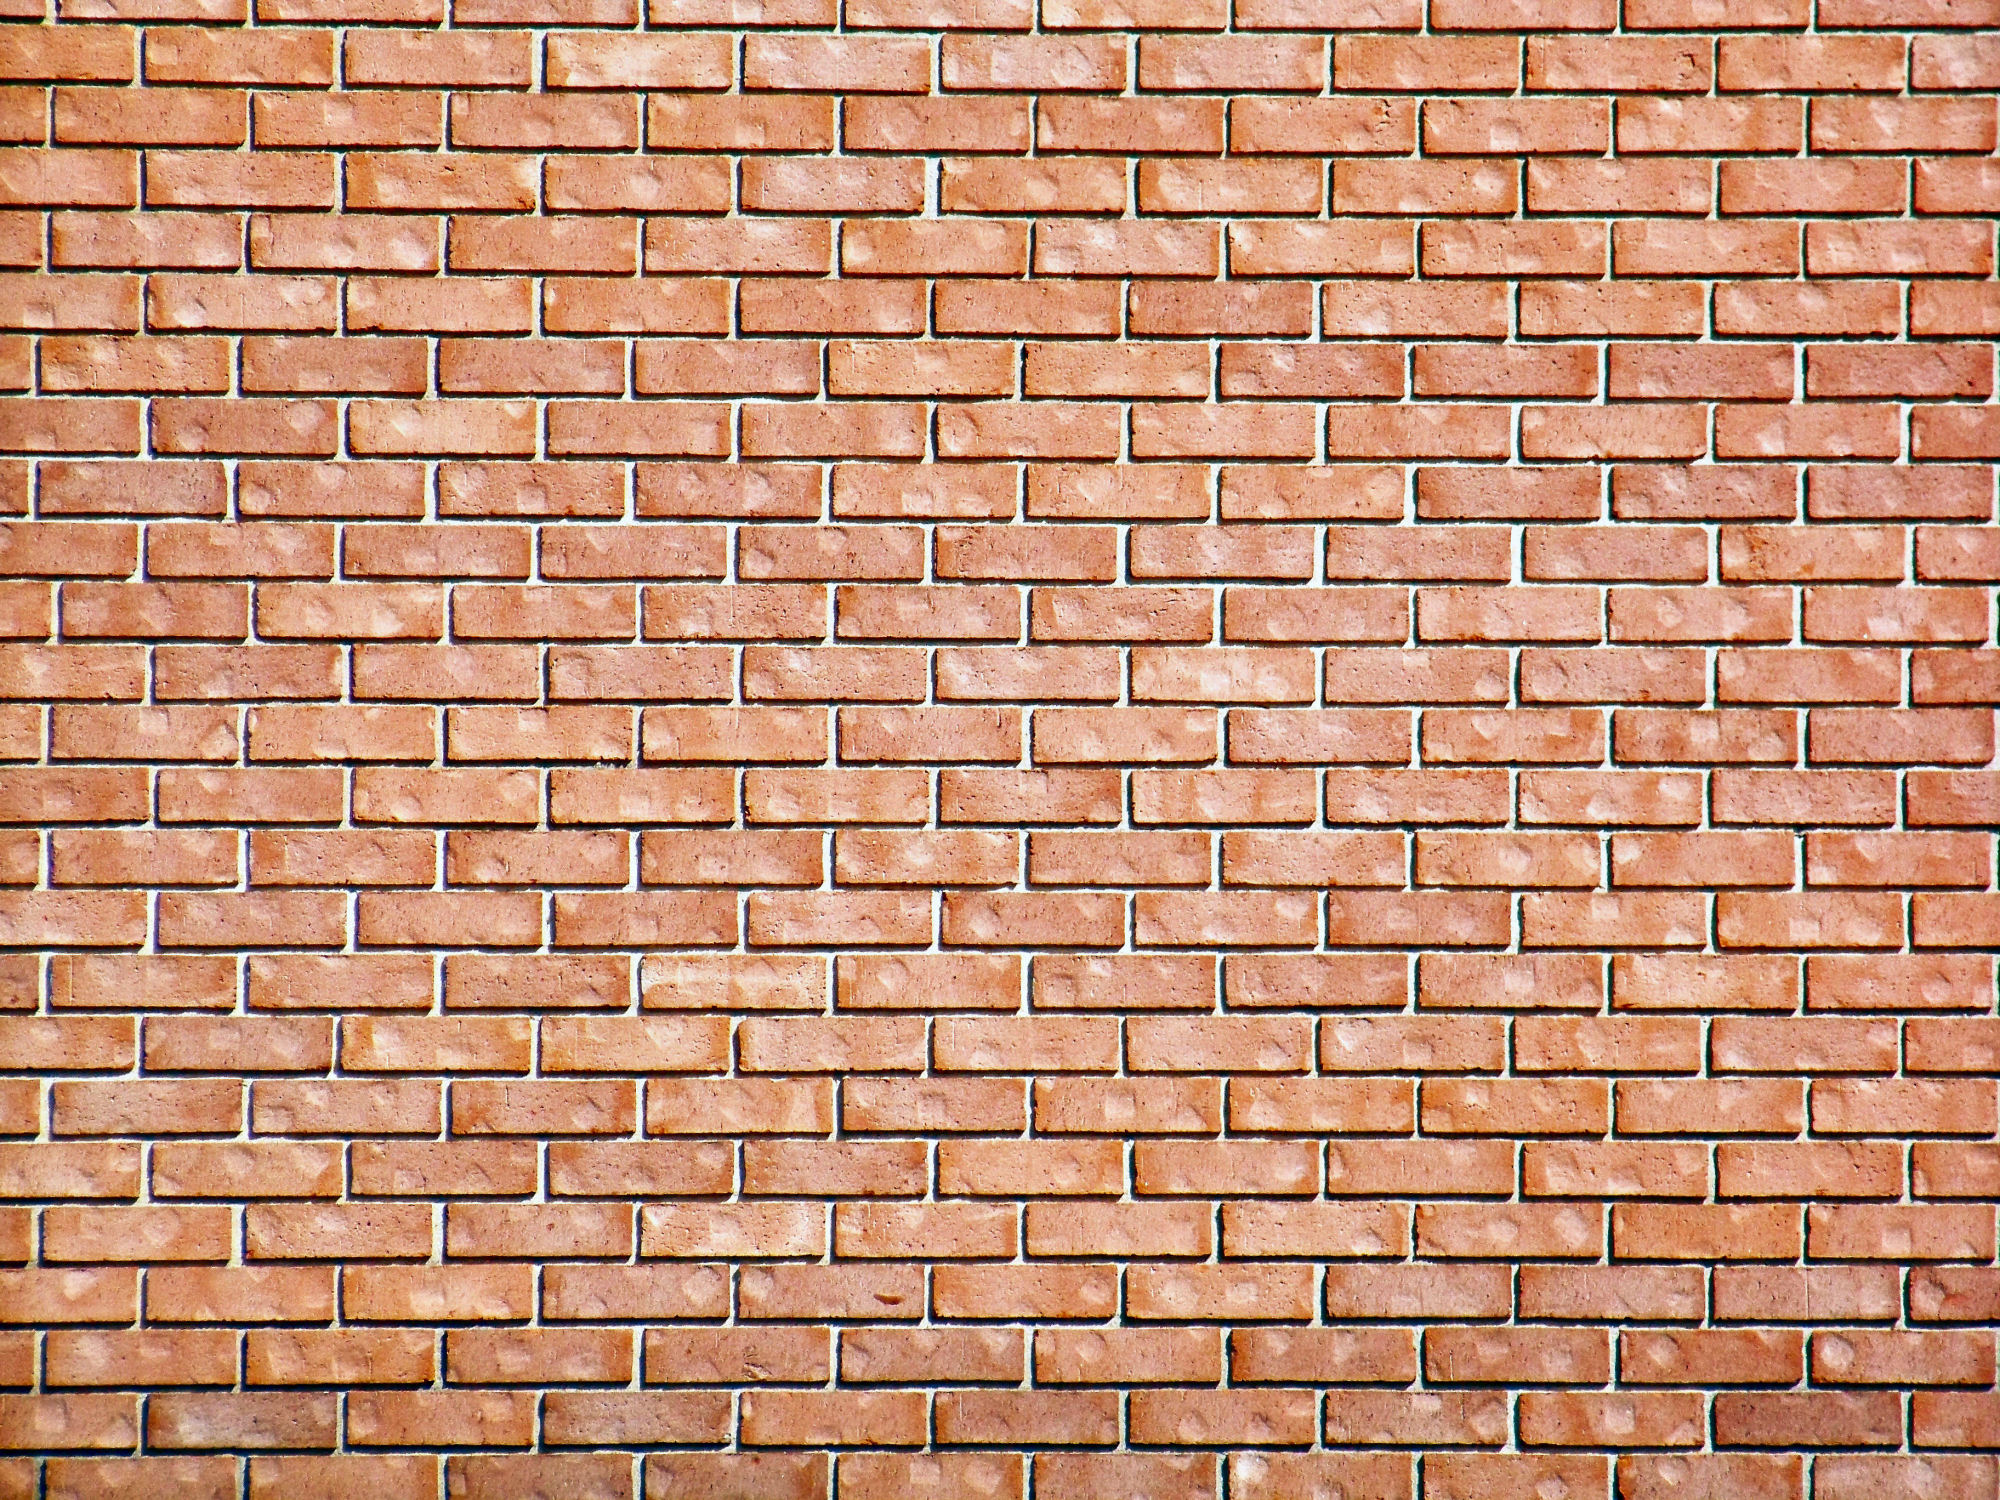 brick wall, texture, bricks, brick wall texture, background, download